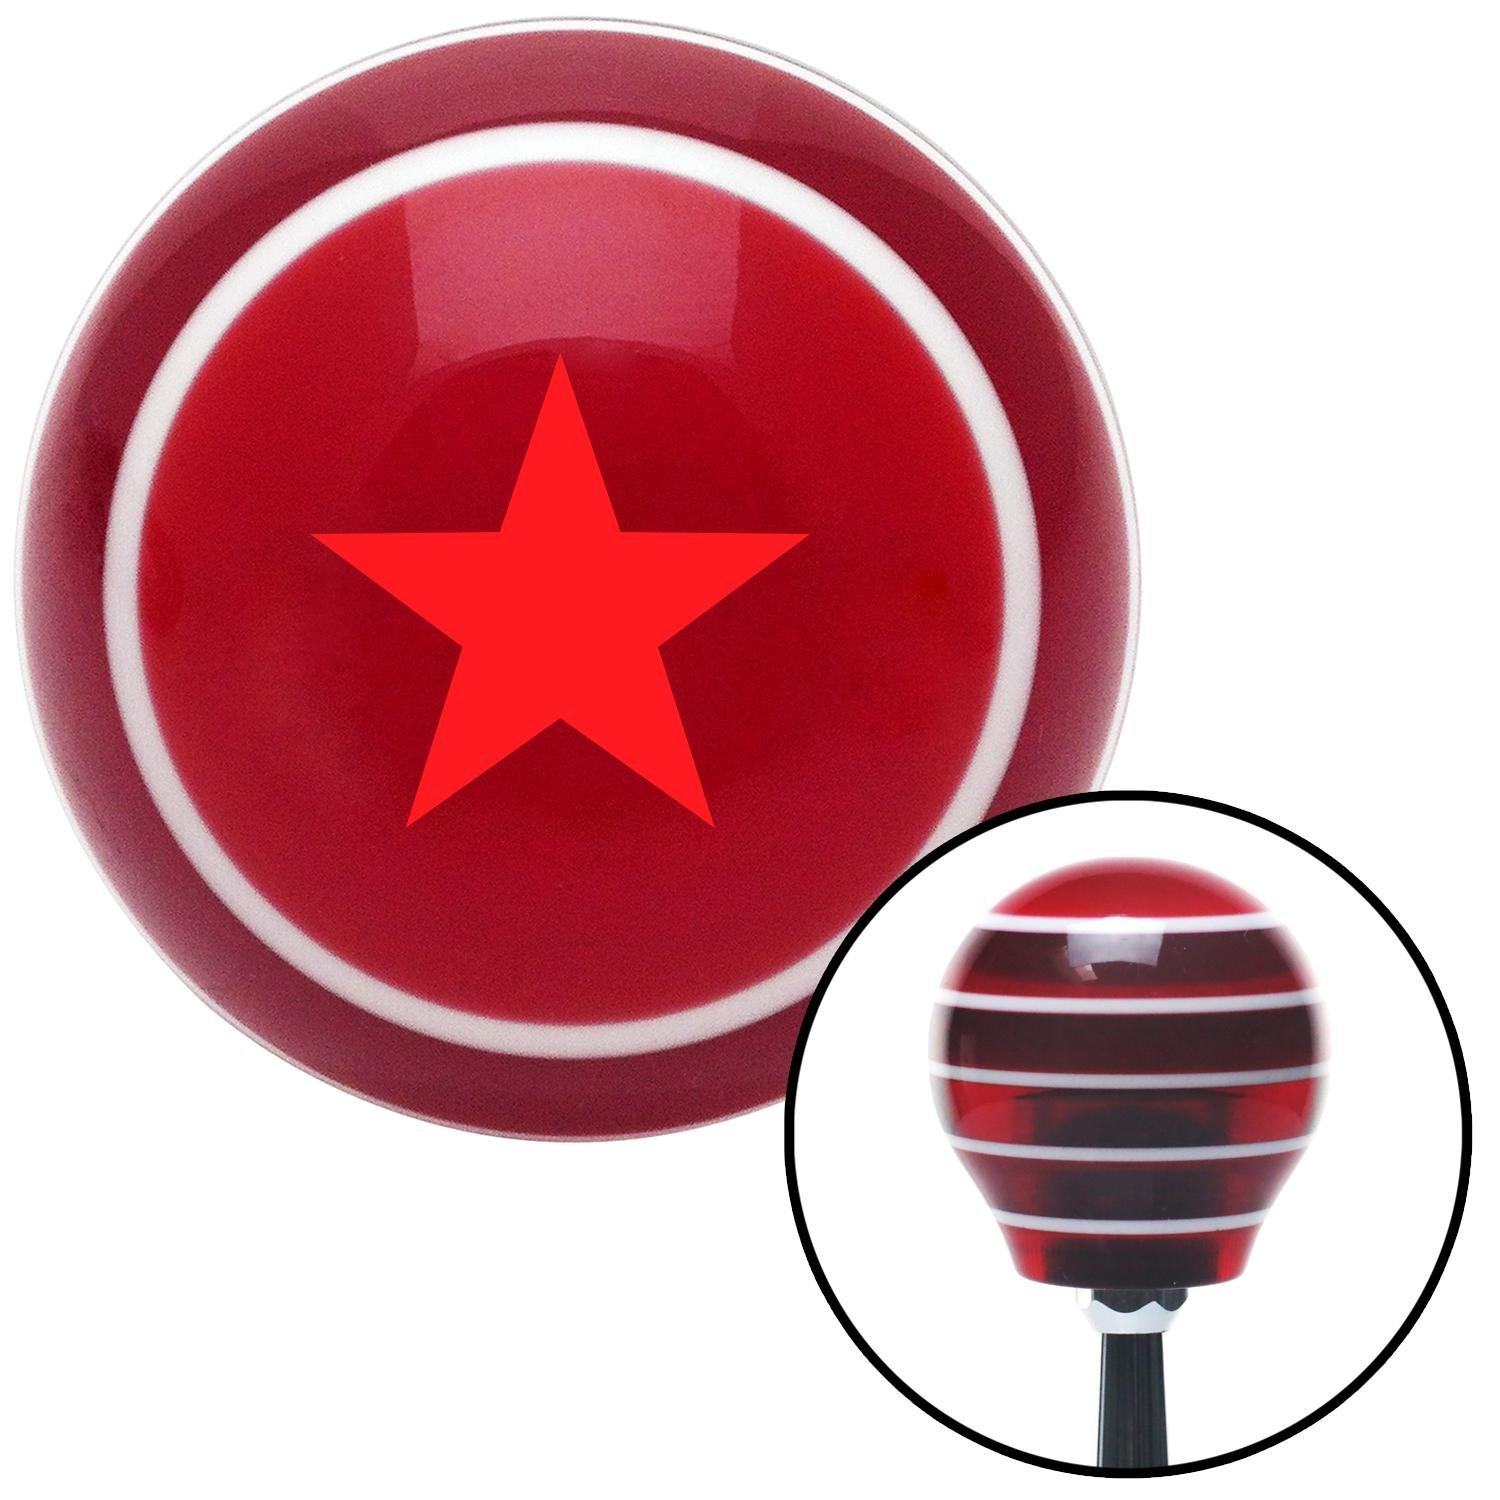 American Shifter 115538 Red Stripe Shift Knob with M16 x 1.5 Insert Red Officer 07 - Rear Admiral, Lower Half